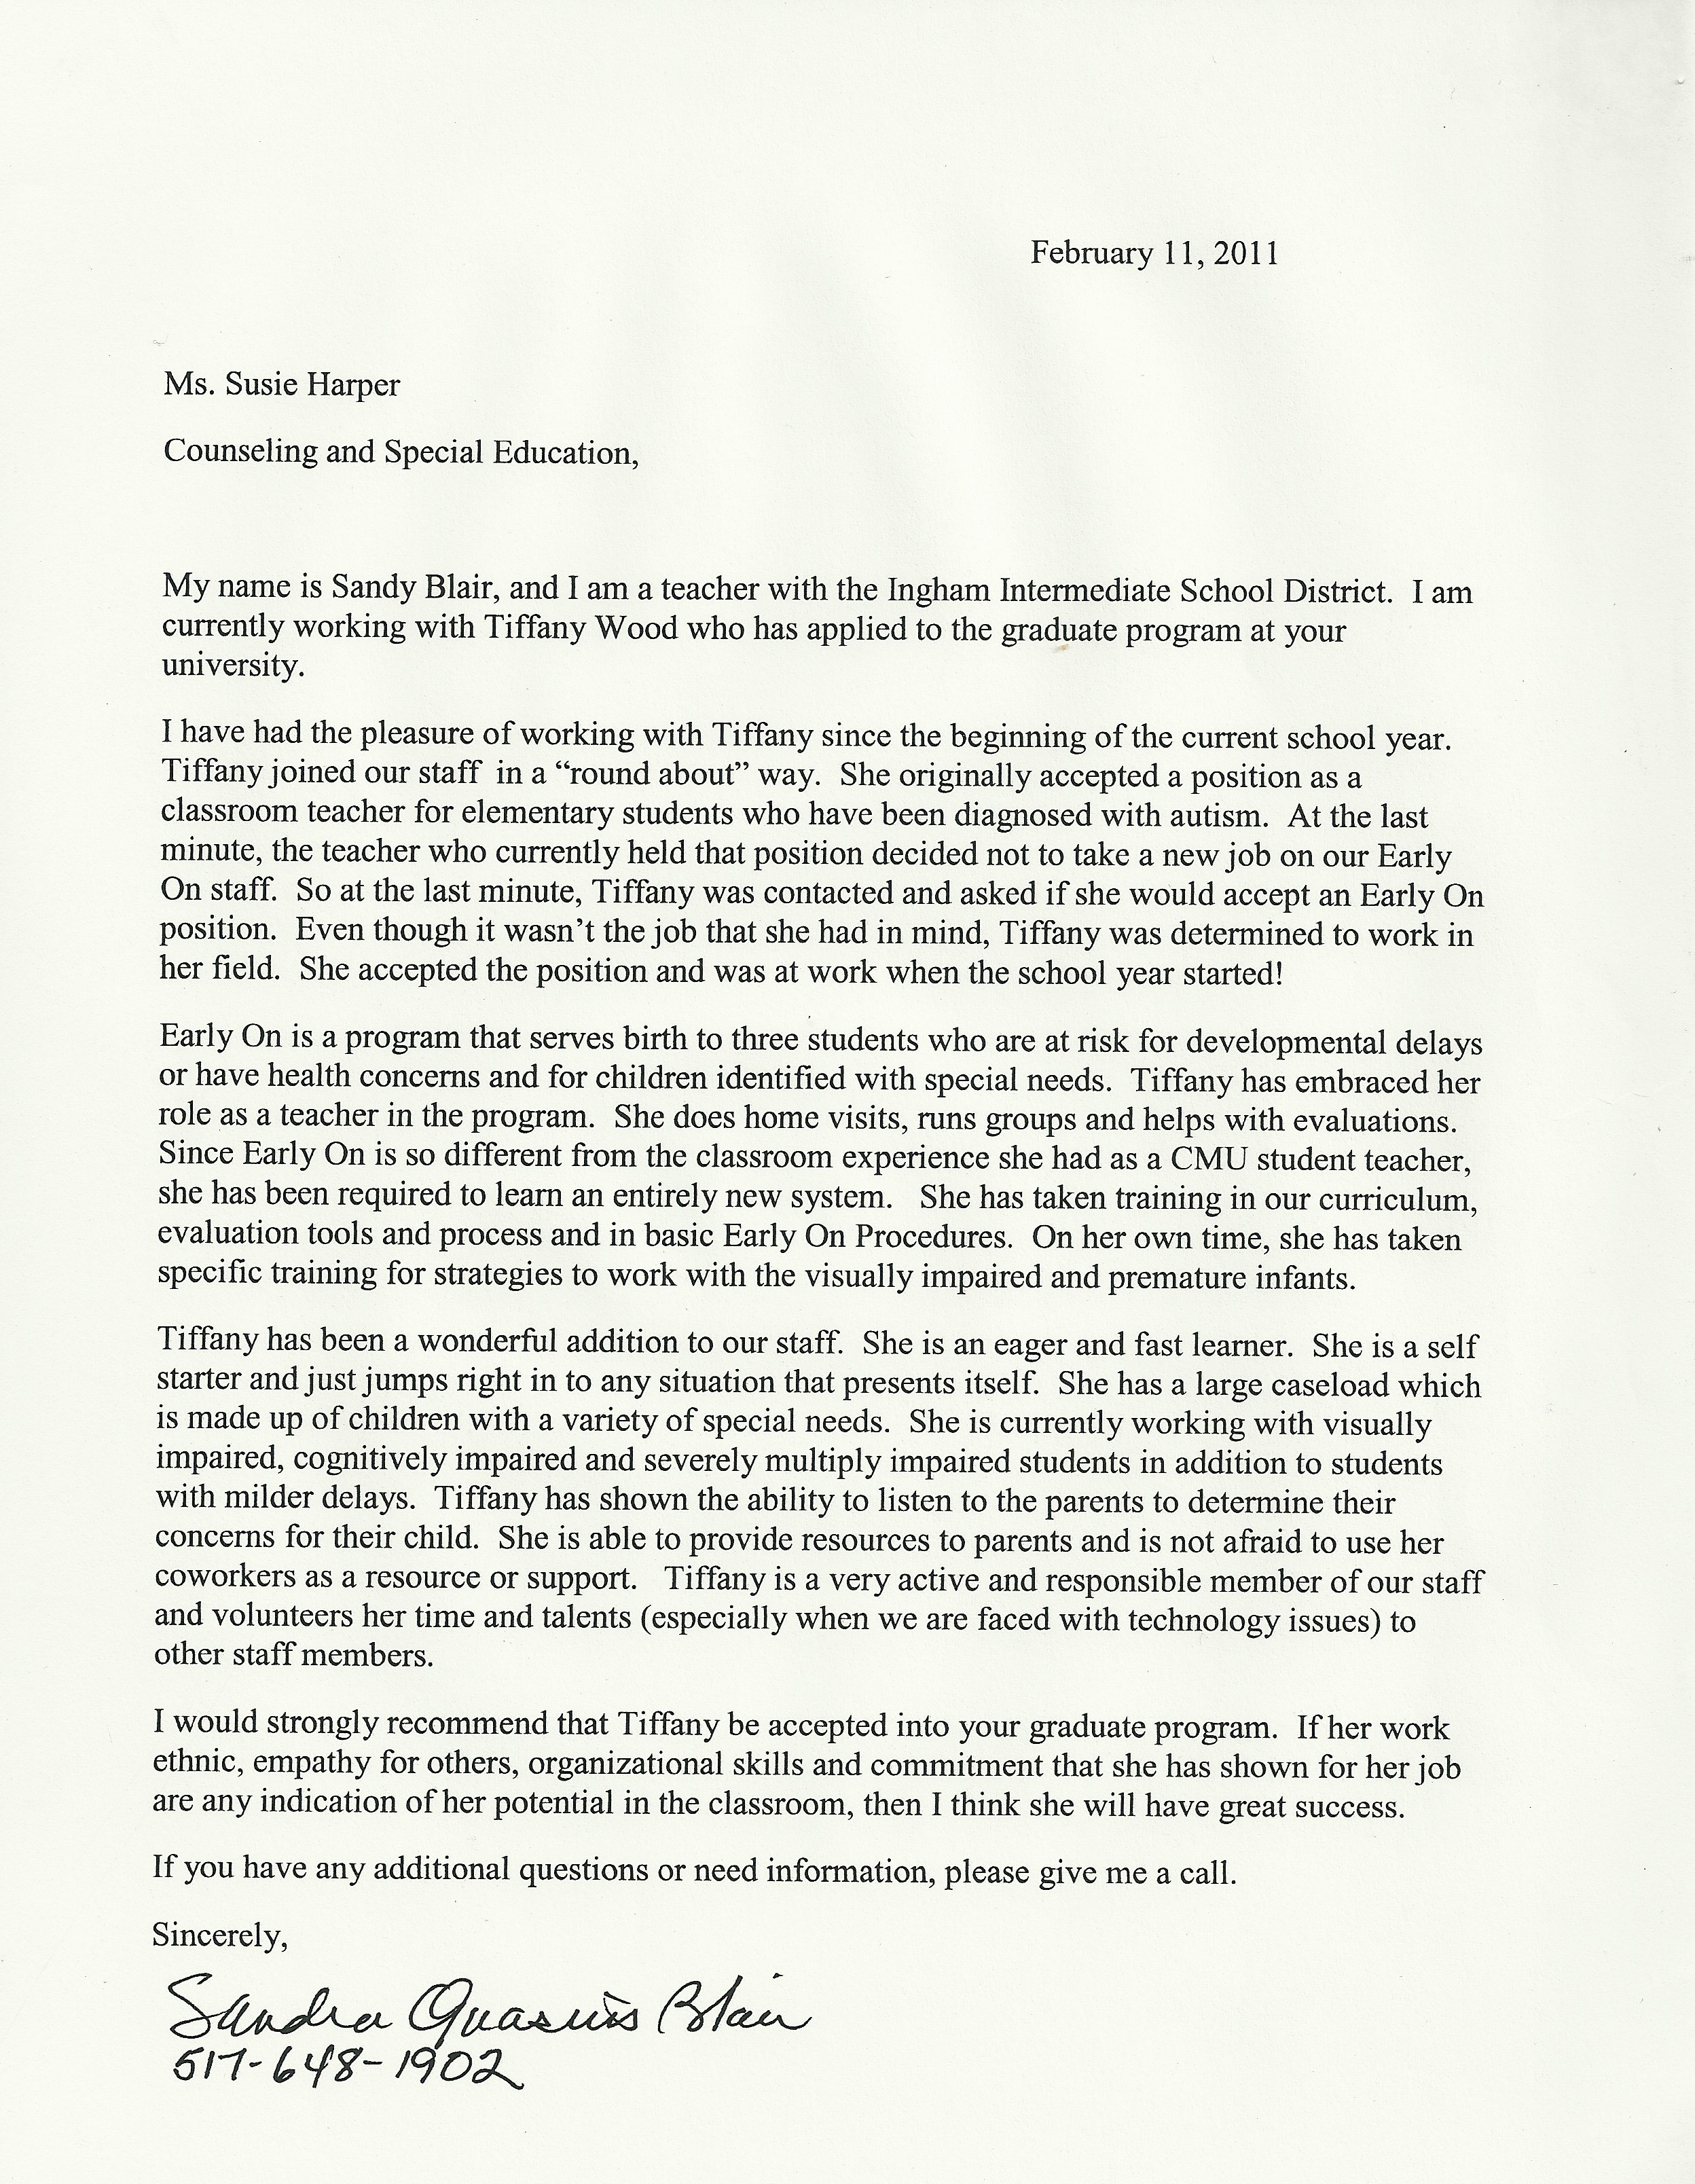 Grad School Letter Of Recommendation Template - Pharmacy School Essay Pharmacy School Essay Ideas for Othello